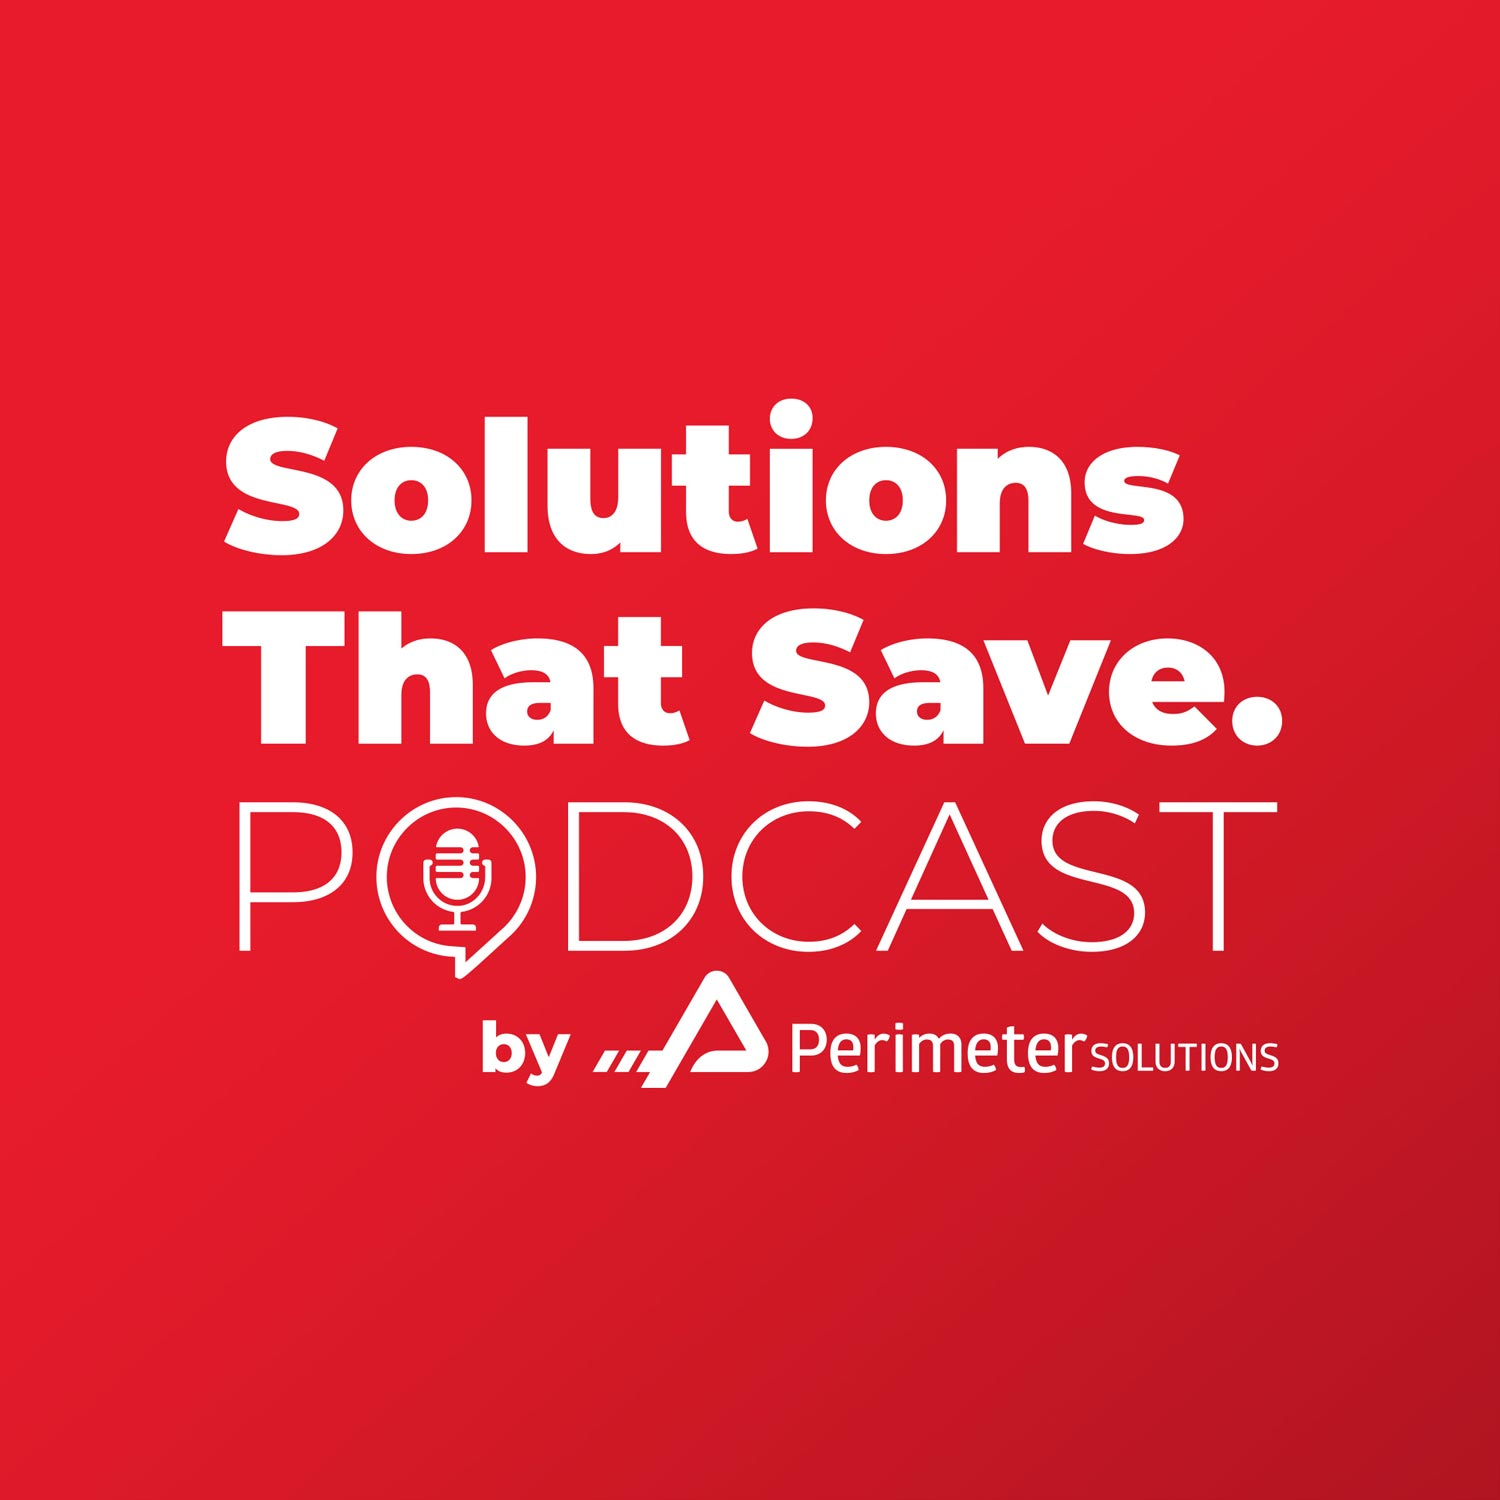 Solutions that Save